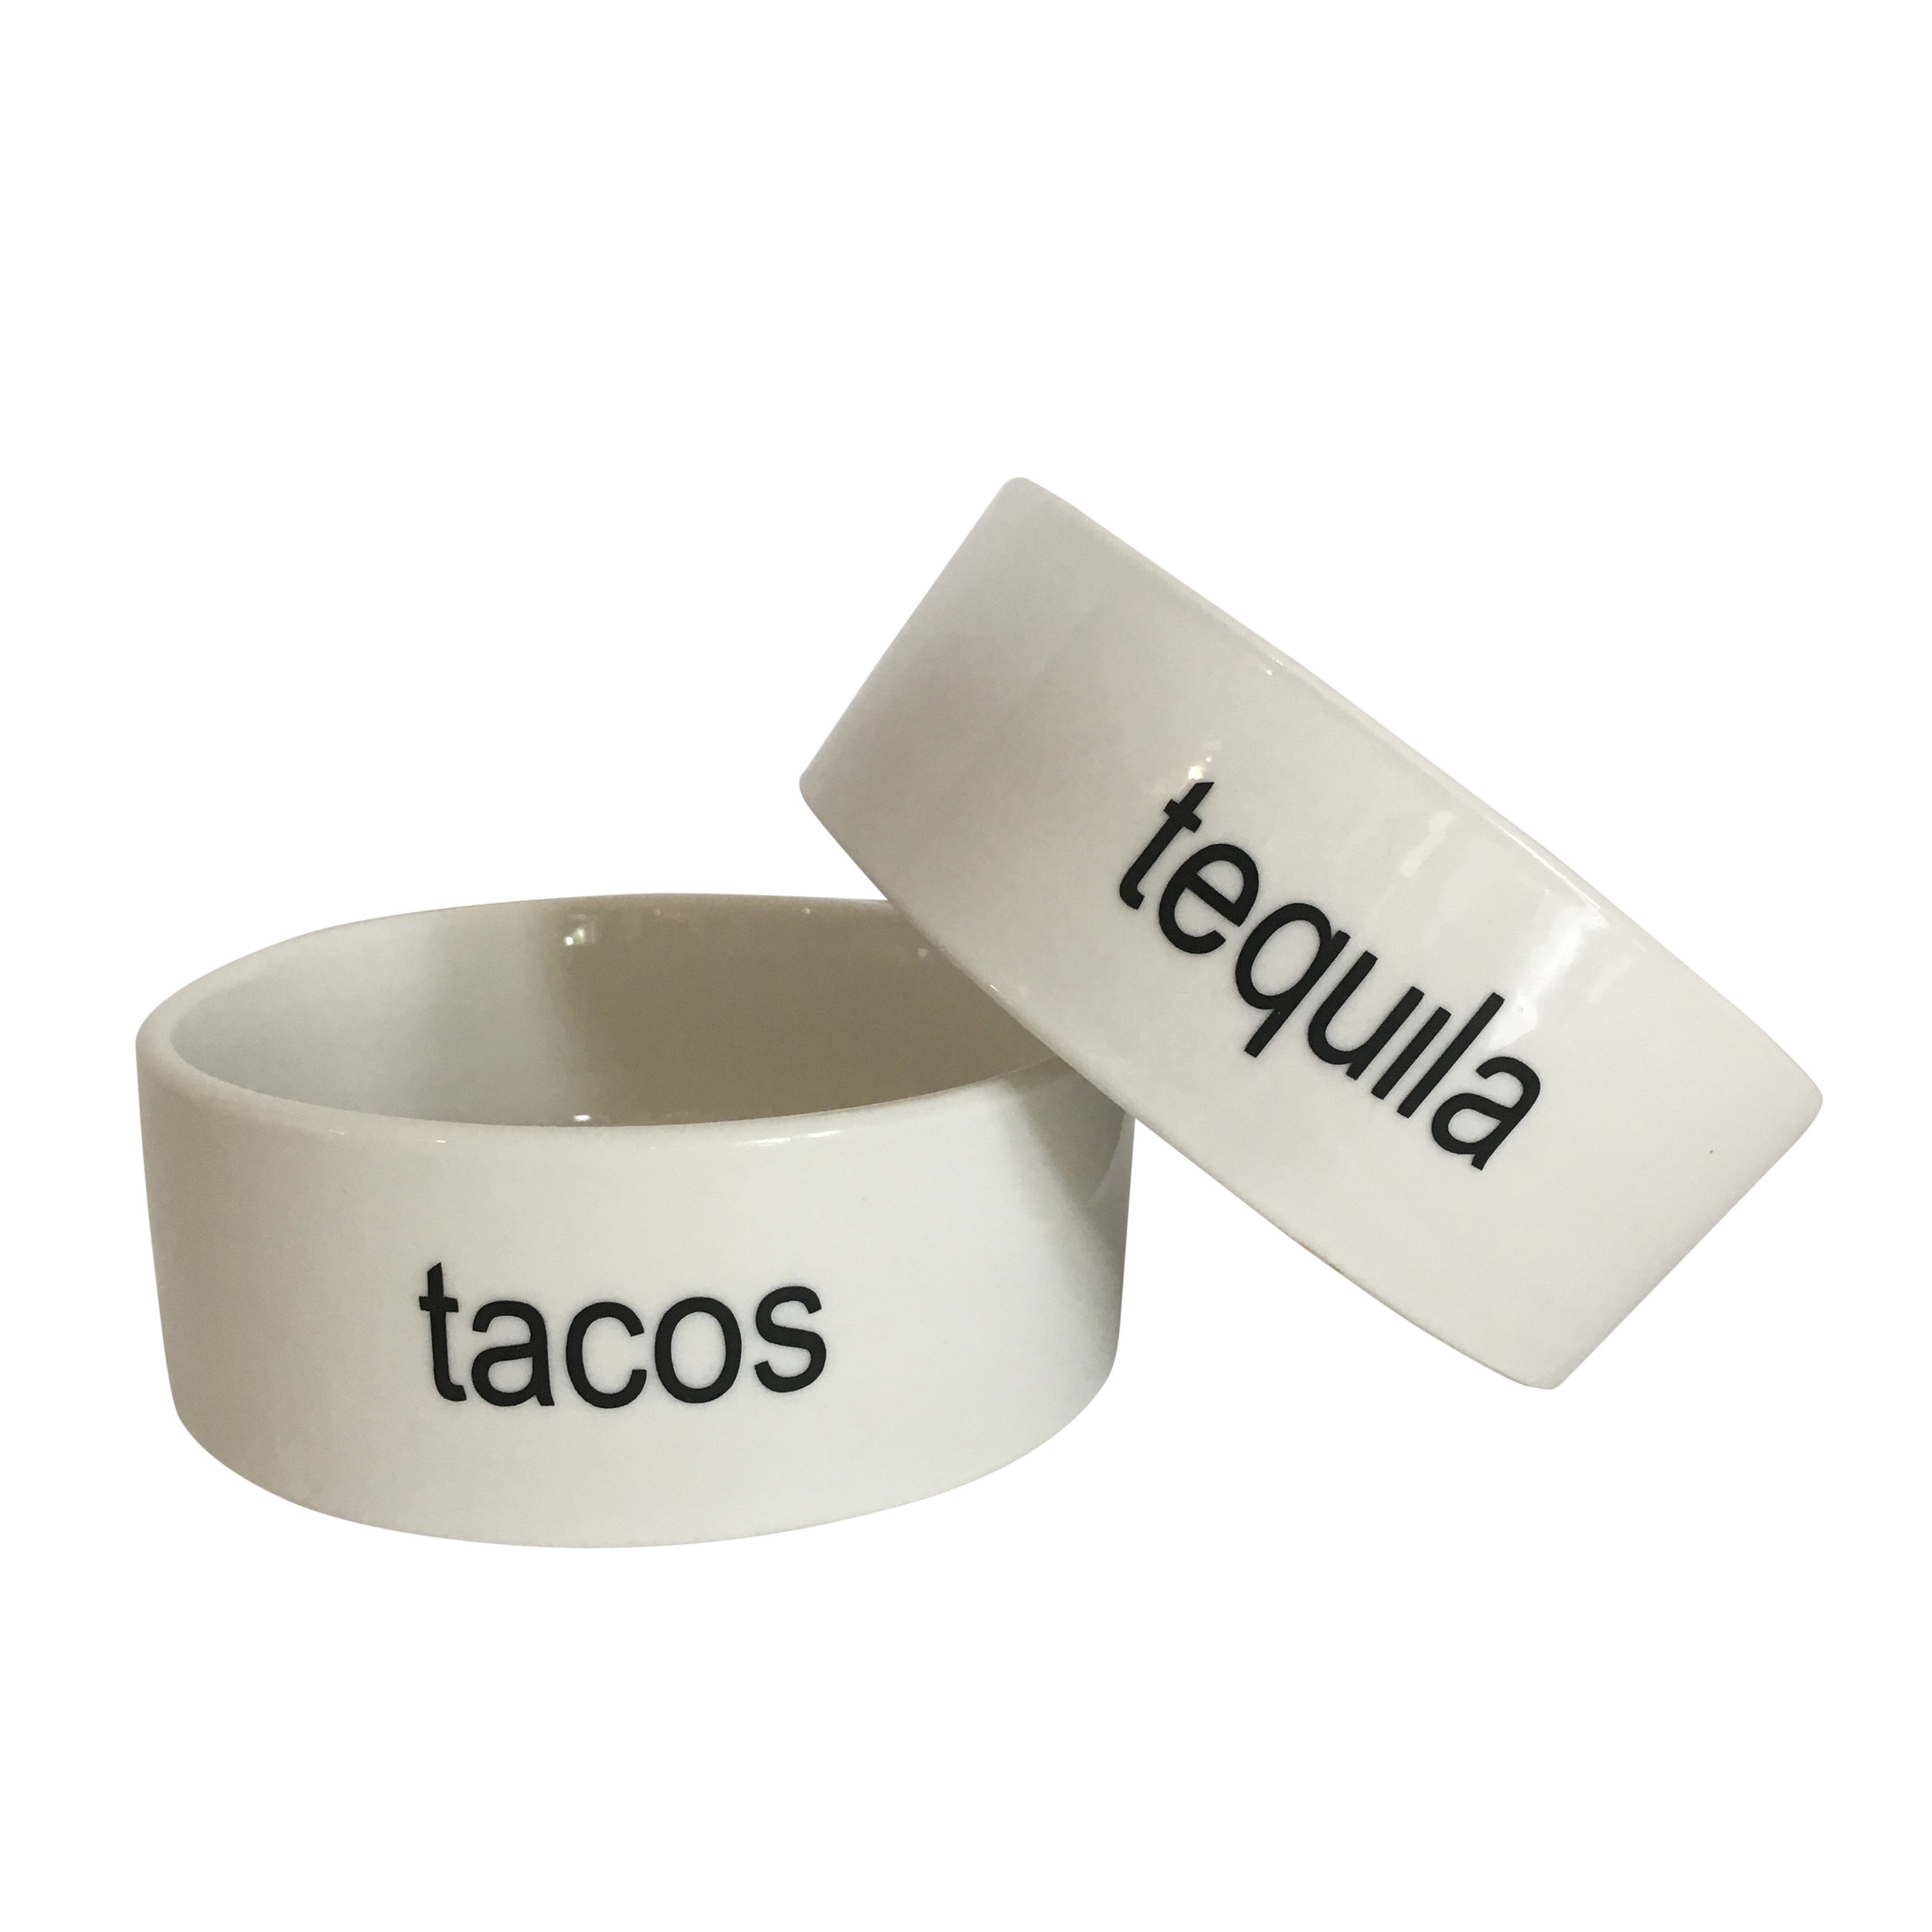 tacos and tequila cat bowls